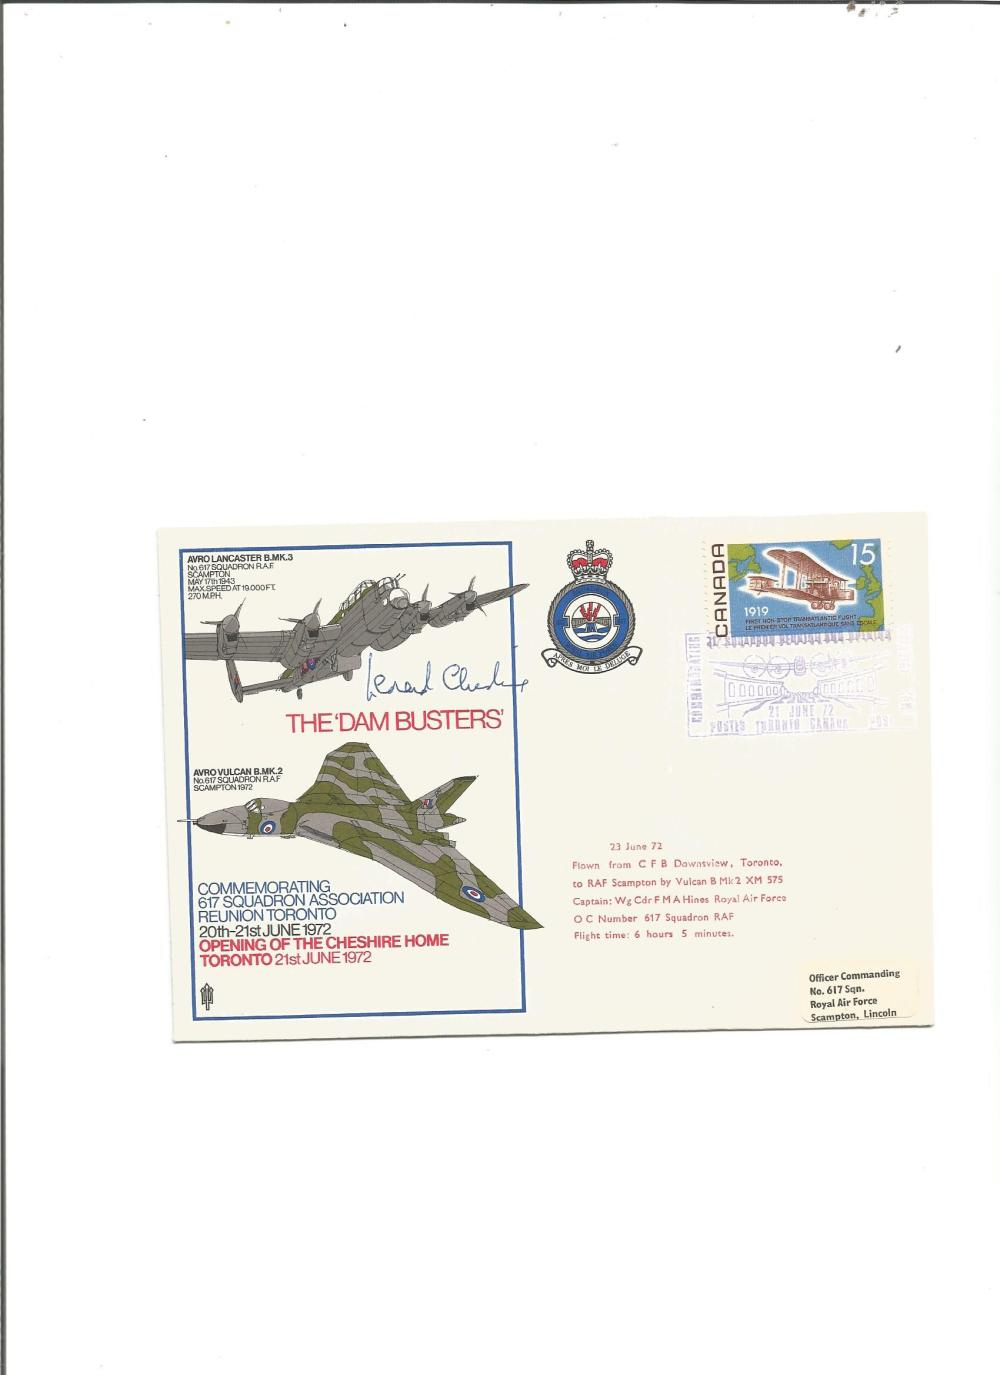 Leonard Cheshire VC signed Dambuster Lancaster and Vulcan bomber RAF cover. Good Condition. All